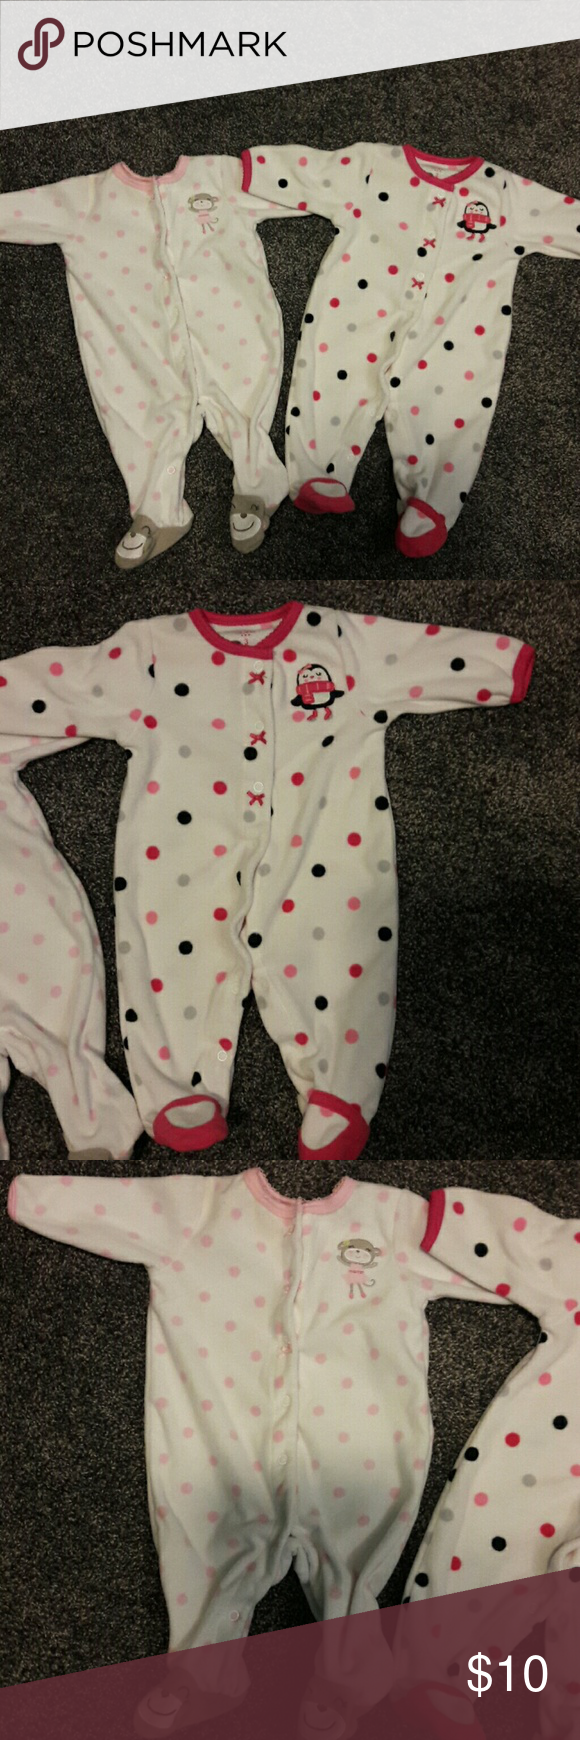 SET OF 2 CARTER'S SLEEPERS Like new. No stains. Adorable feet socks. Pink w/polka dots. Carter's One Pieces Footies